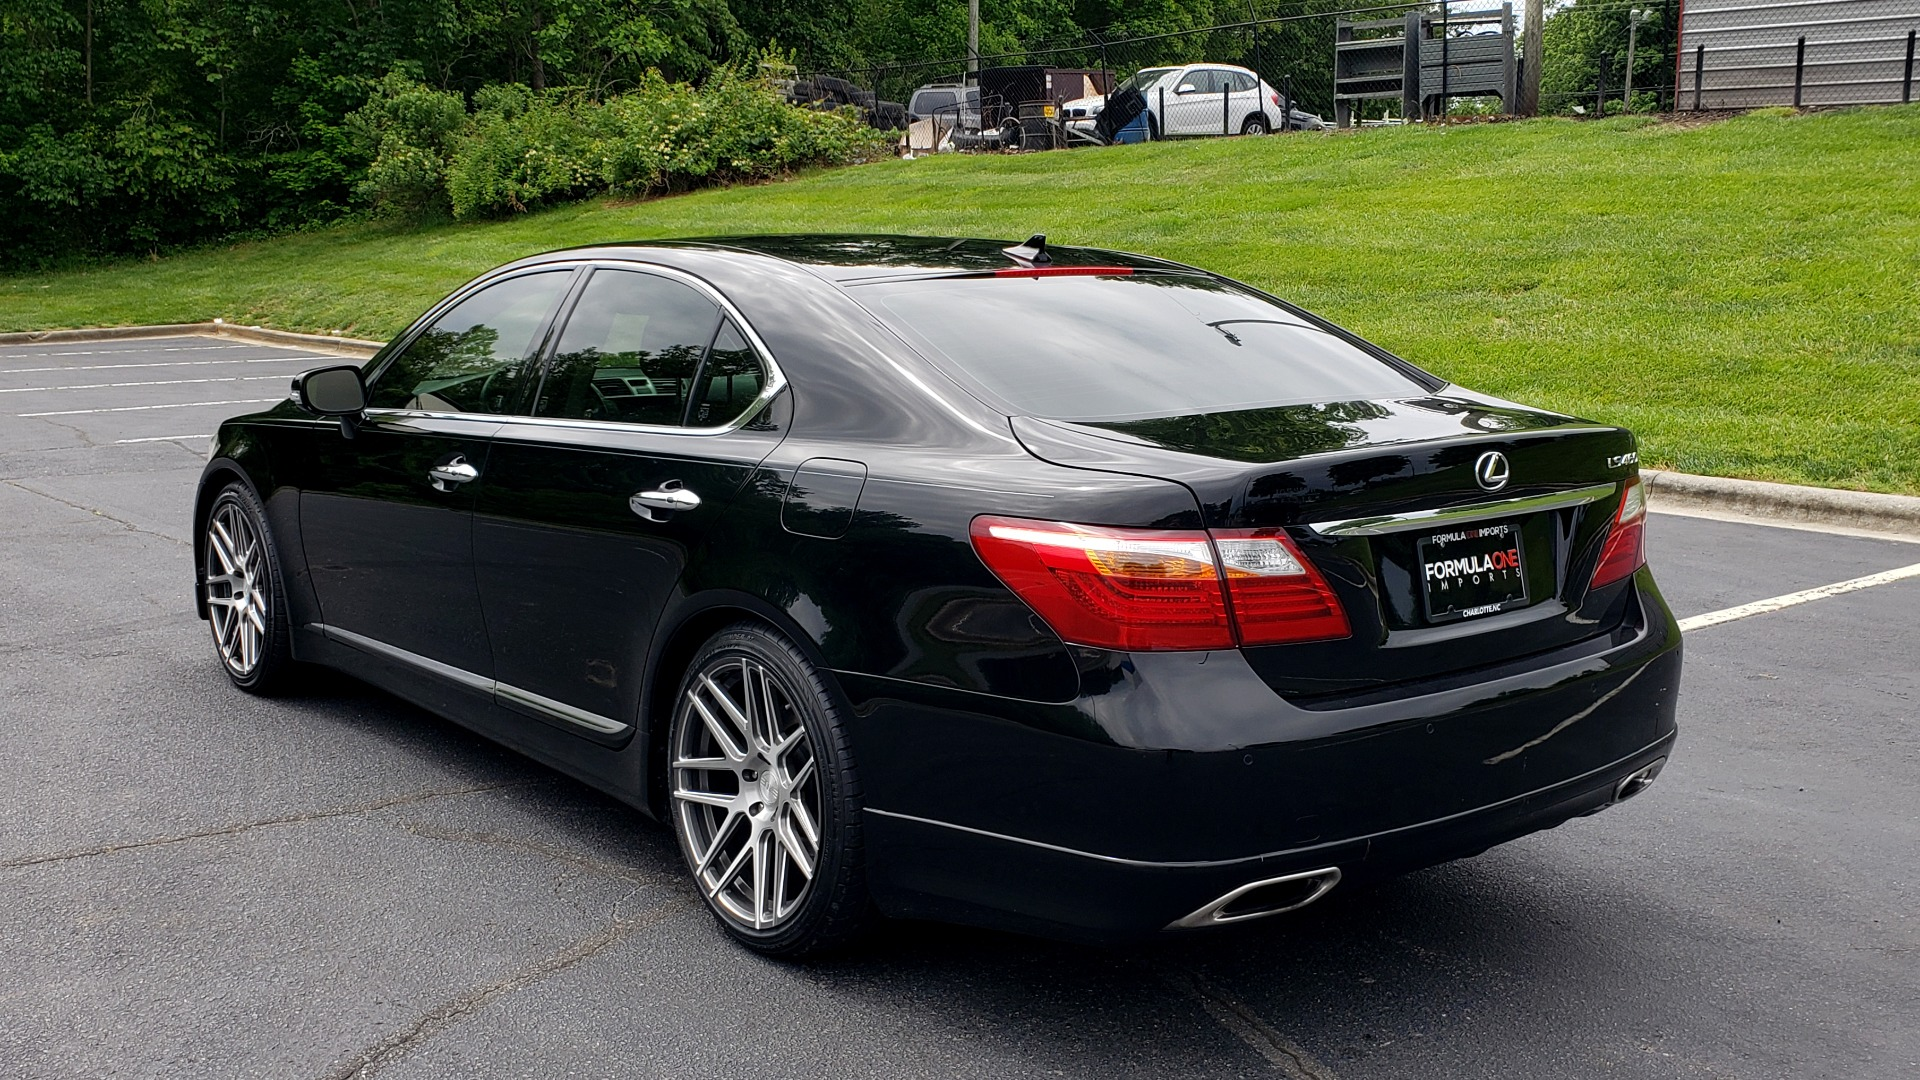 Used 2012 Lexus LS 460 COMFORT W/SPORT / VENT SEATS / NAV / MARK LEV SND / SUNROOF for sale Sold at Formula Imports in Charlotte NC 28227 4